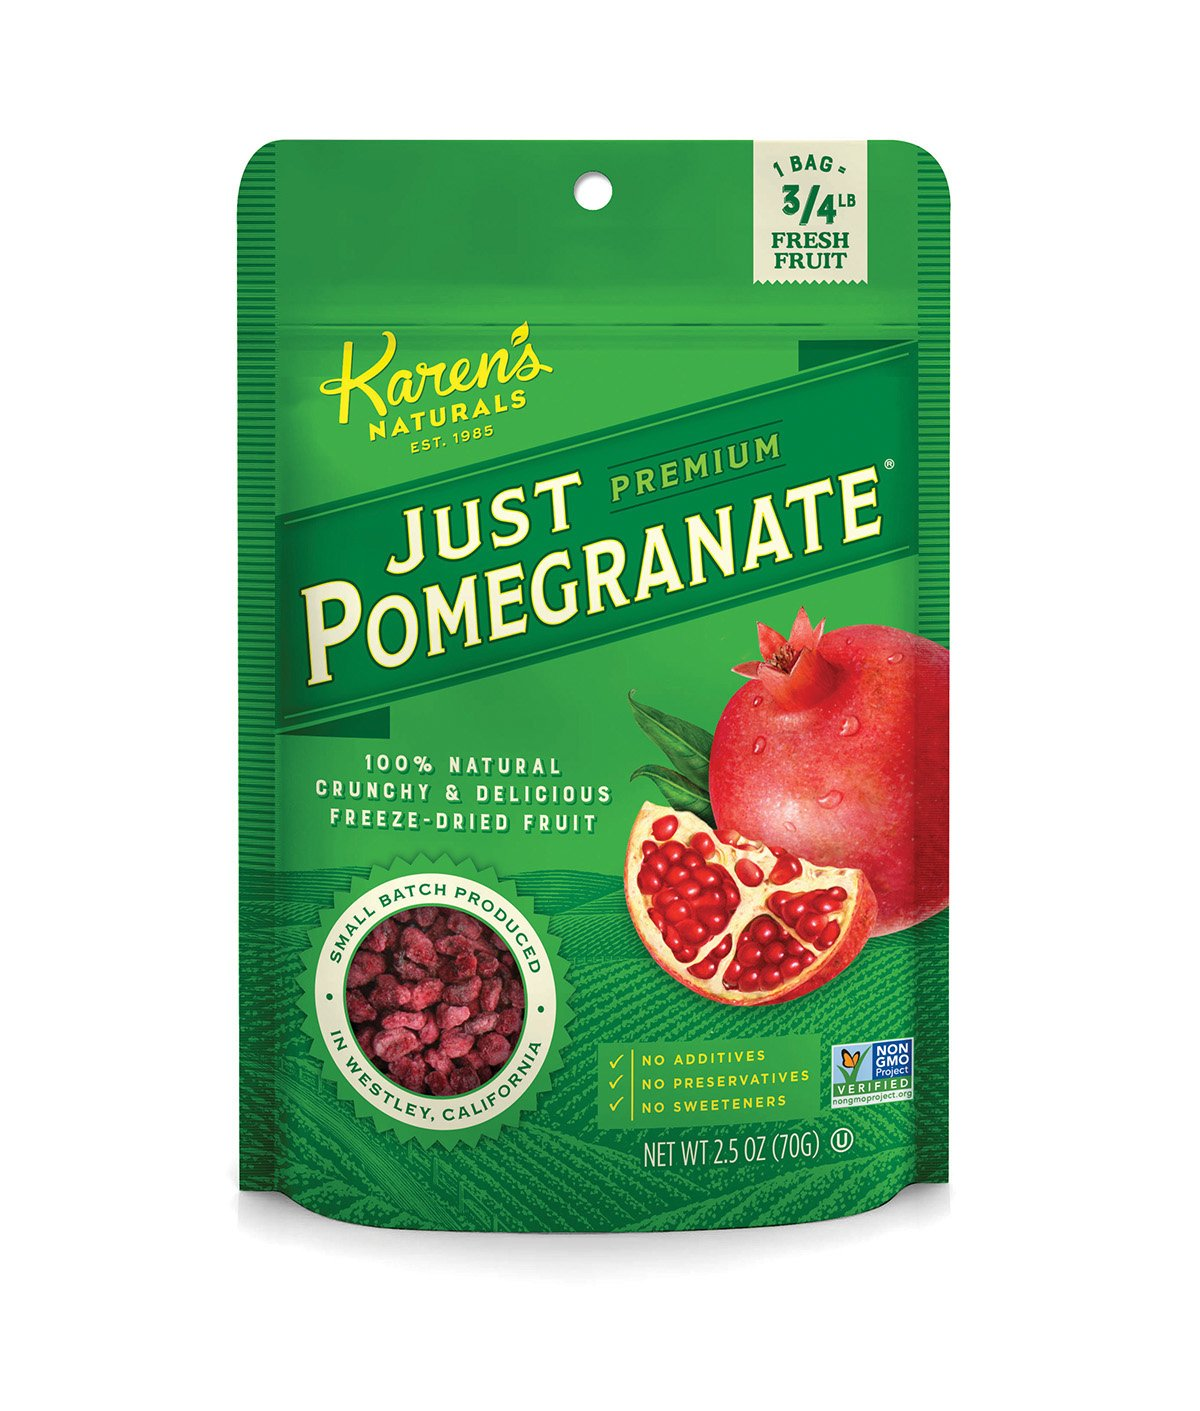 Karen's Naturals Just Tomatoes, Just Pomegranate 2.5 Ounce Pouch (Packaging May Vary)